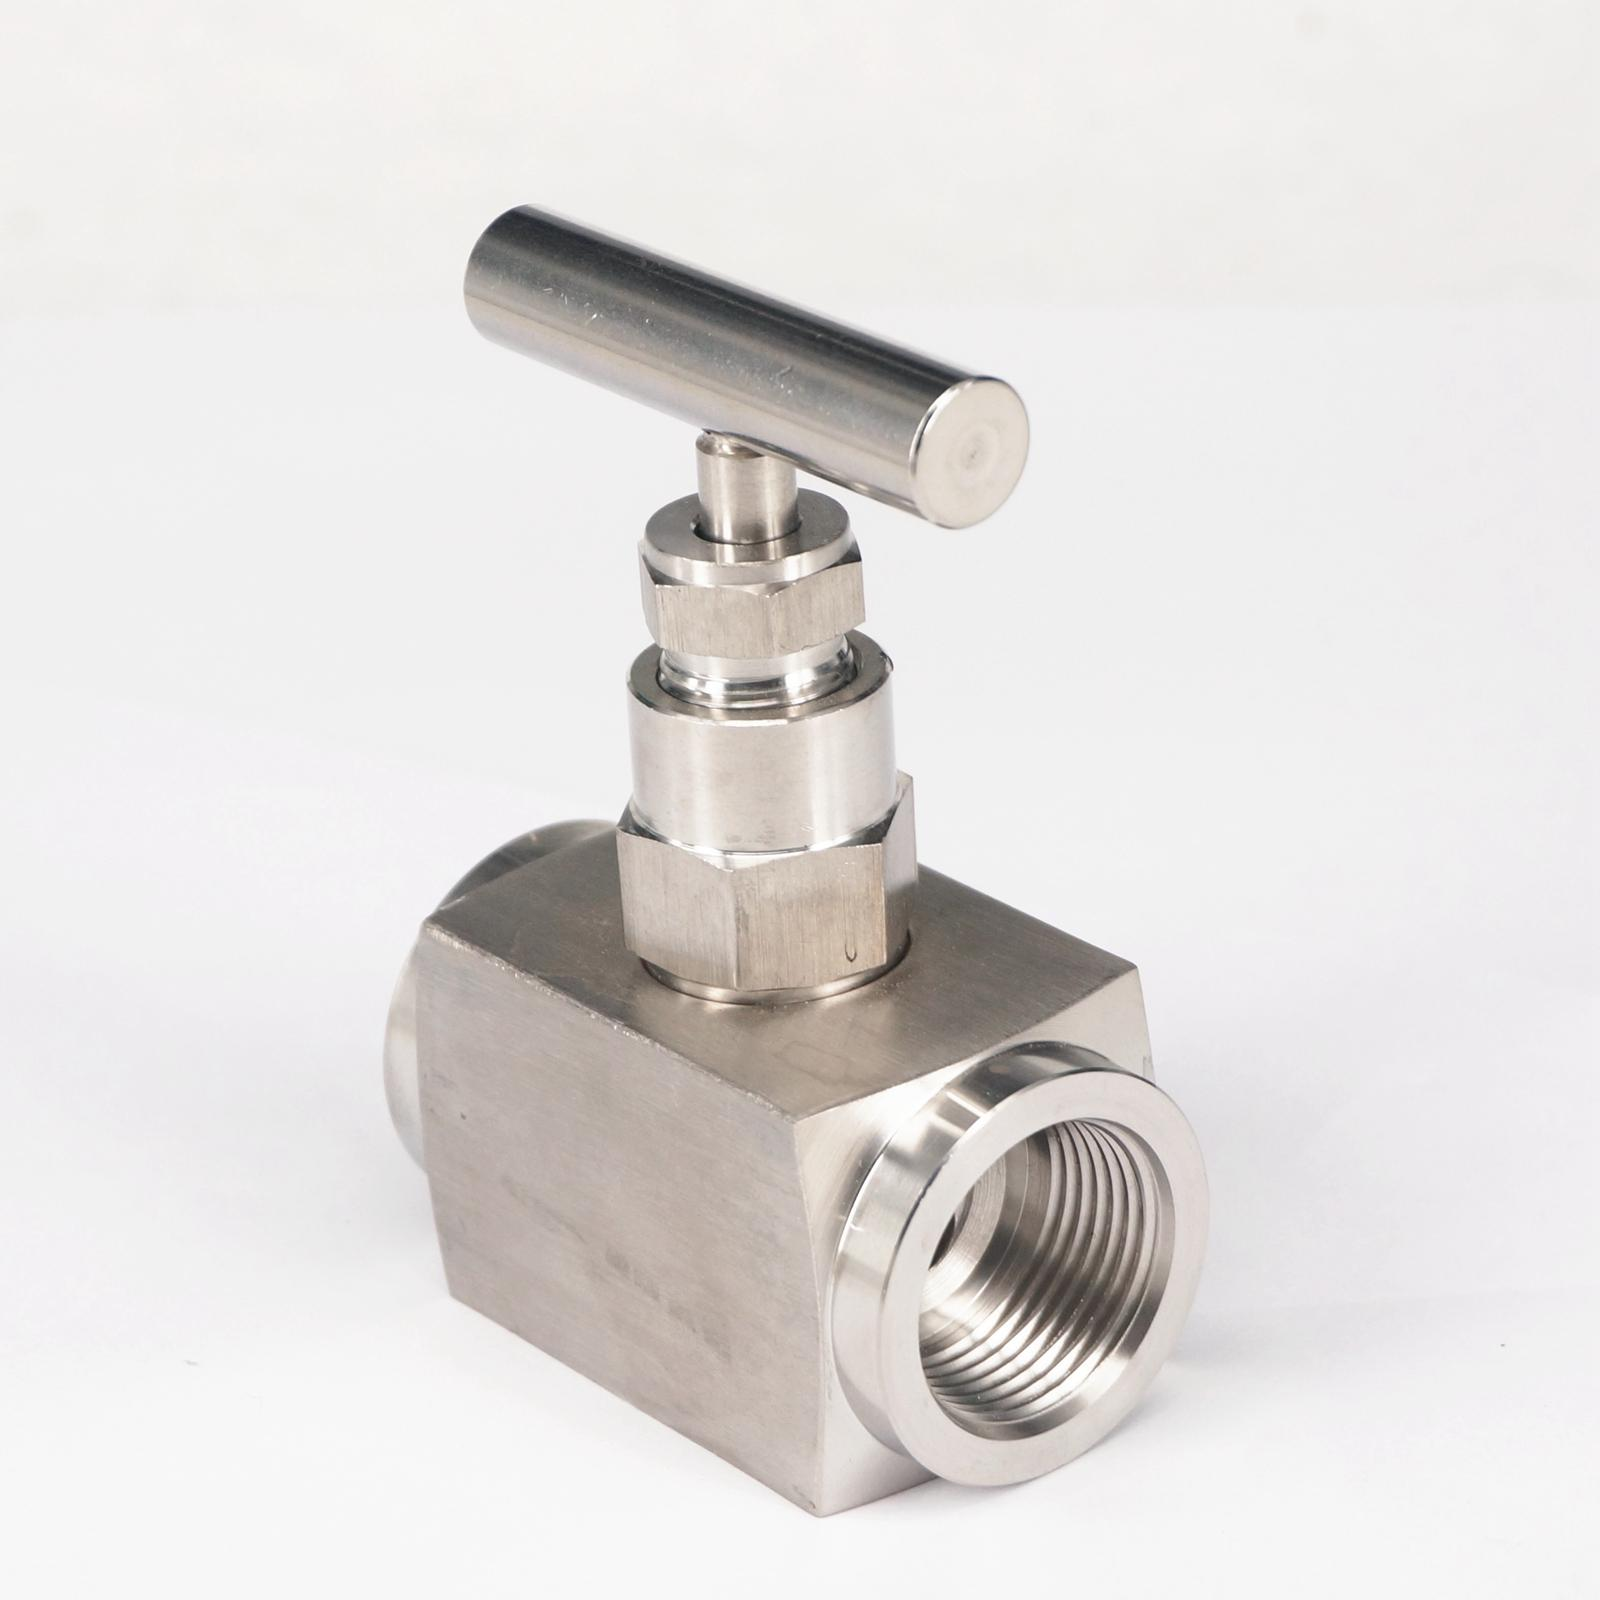 3/4 BSP Female SUS 304 Stainless Steel Flow Control Needle Valve 2250 PSI water oil fuel steam 1 2 bsp female 304 stainless steel flow control shut off needle valve 915 psi water gas oil